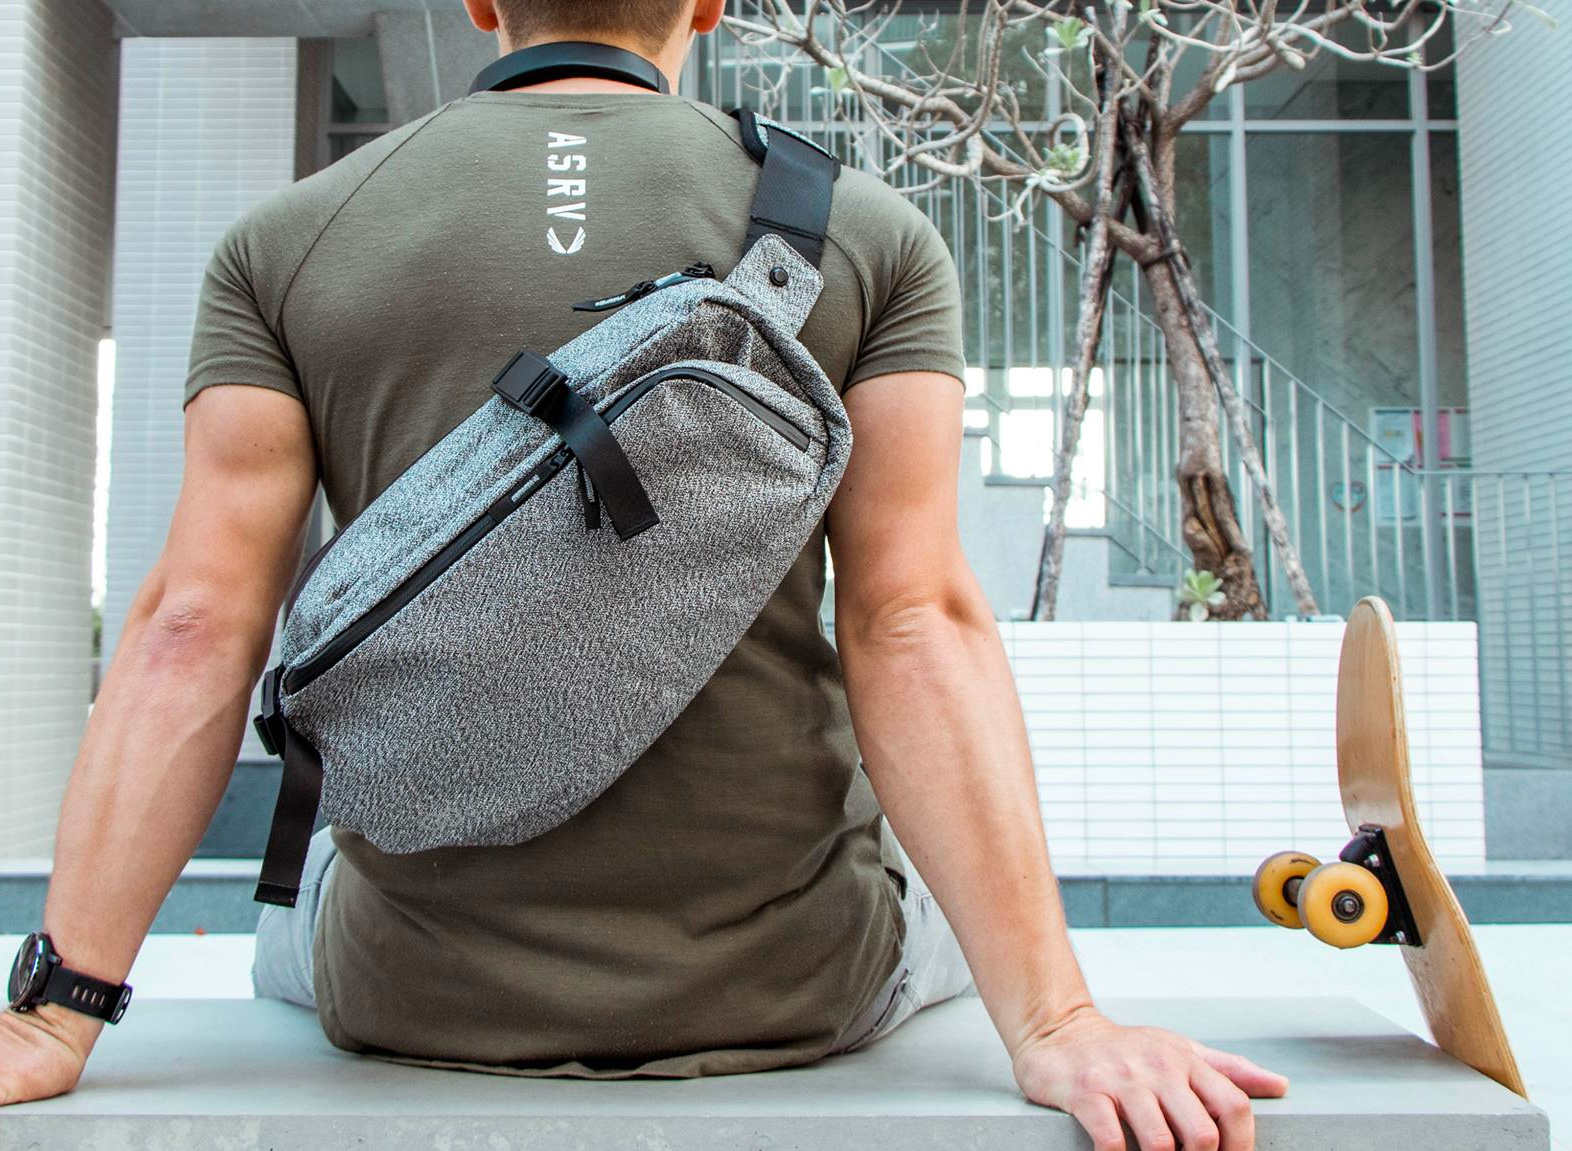 The Cycop DaySling 2.0 Keeps Gear Dry & Secure at werd.com